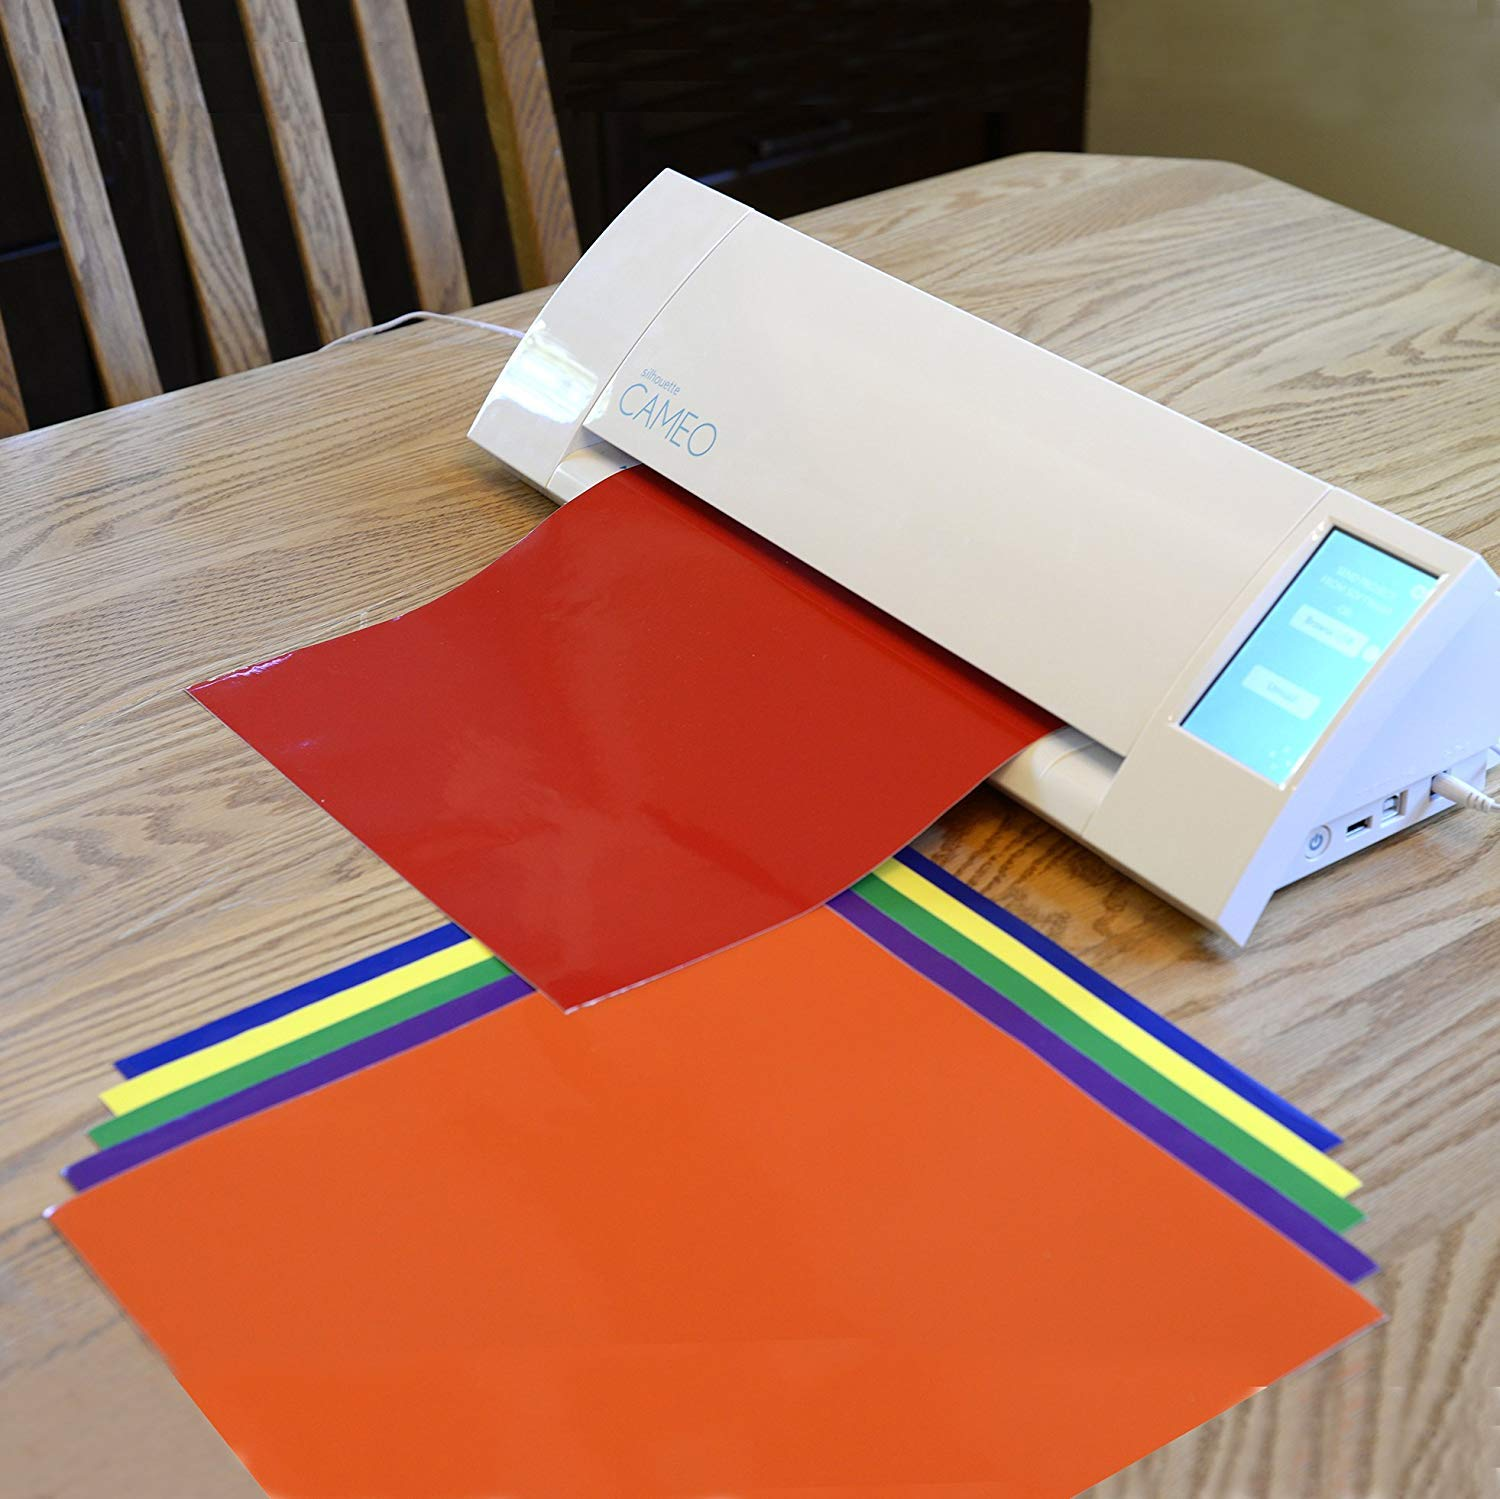 Delighted User Recommends Angel Crafts Adhesive Vinyl Sheets for Quality and Color Variety